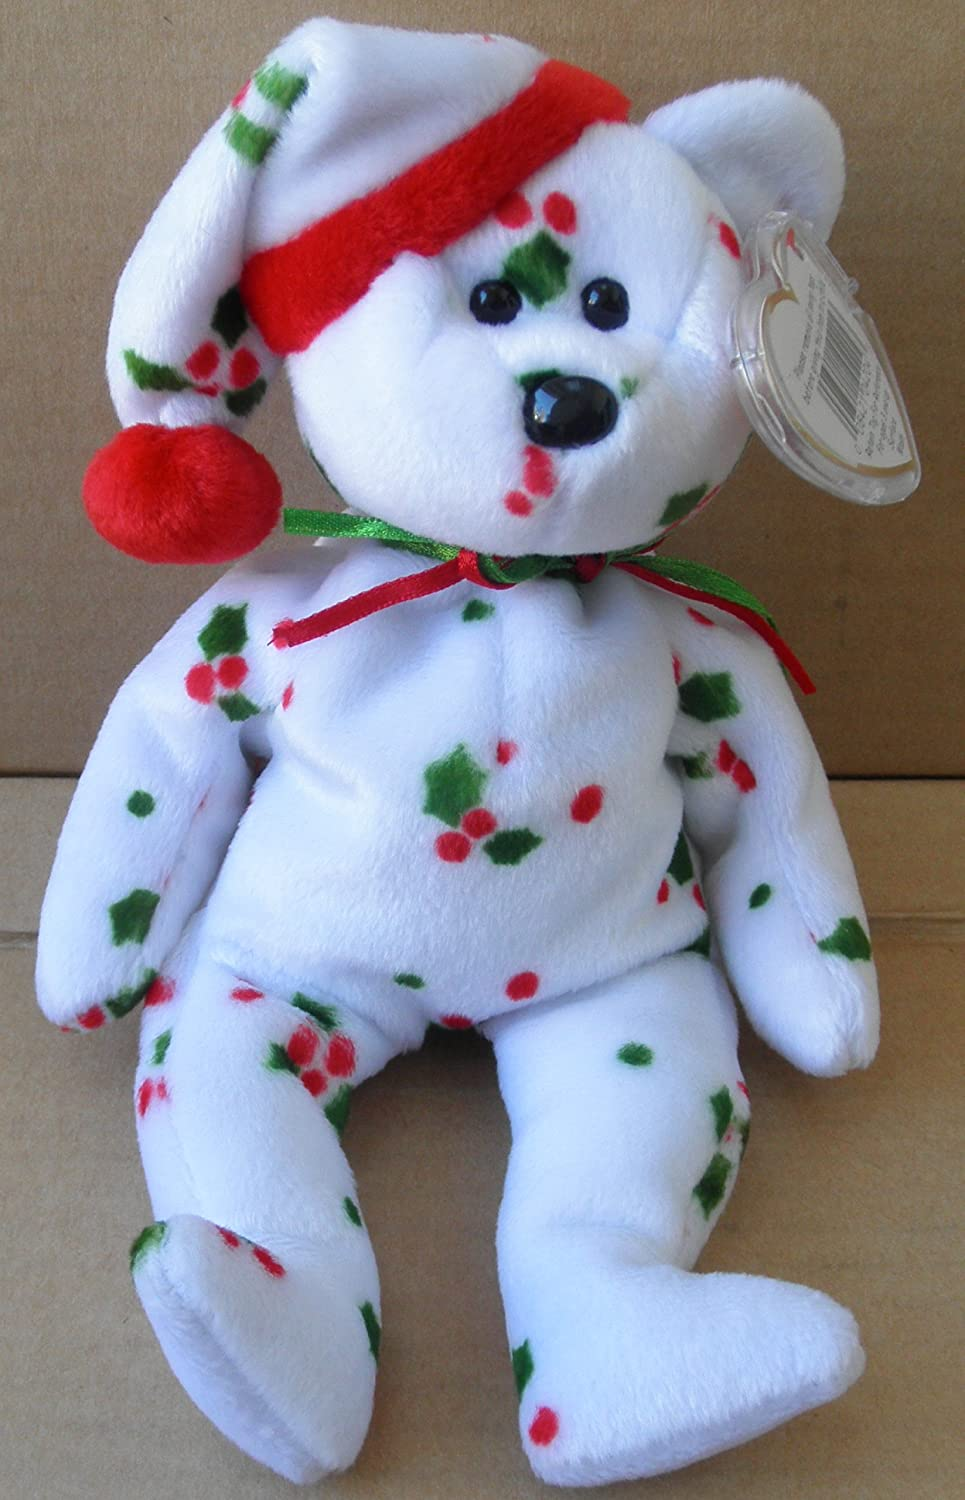 59e759d7d1b Amazon.com  TY Beanie Babies 1998 Holiday Teddy Bear Stuffed Animal Plush  Toy - 8 1 2 inches tall - White with Holly Leaf Design and Santa Hat   Everything ...